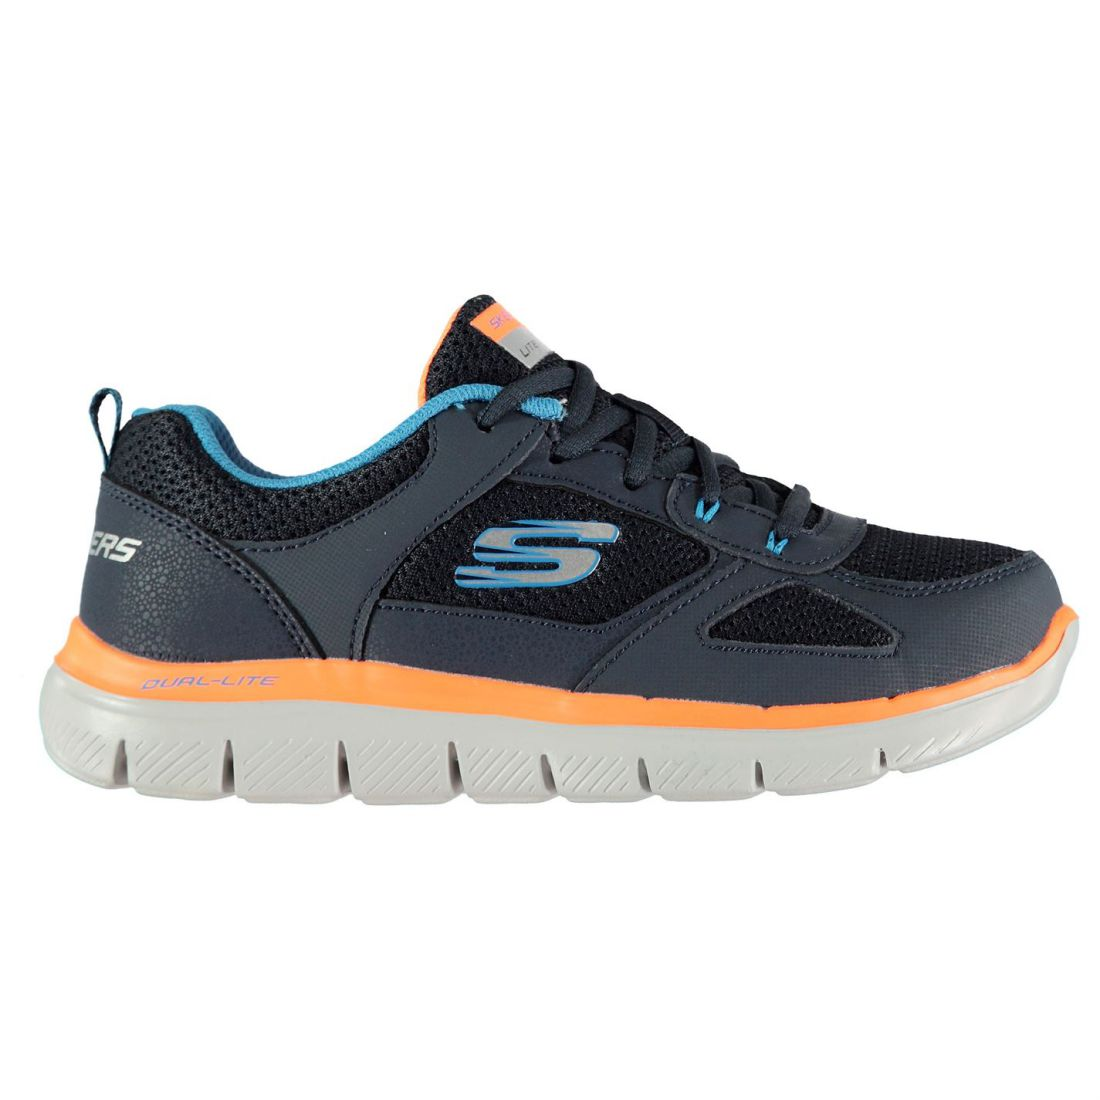 3f5ca326cc84 Skechers Kids Boys Flex Advantage 2.0 Trainers Junior Runners ...